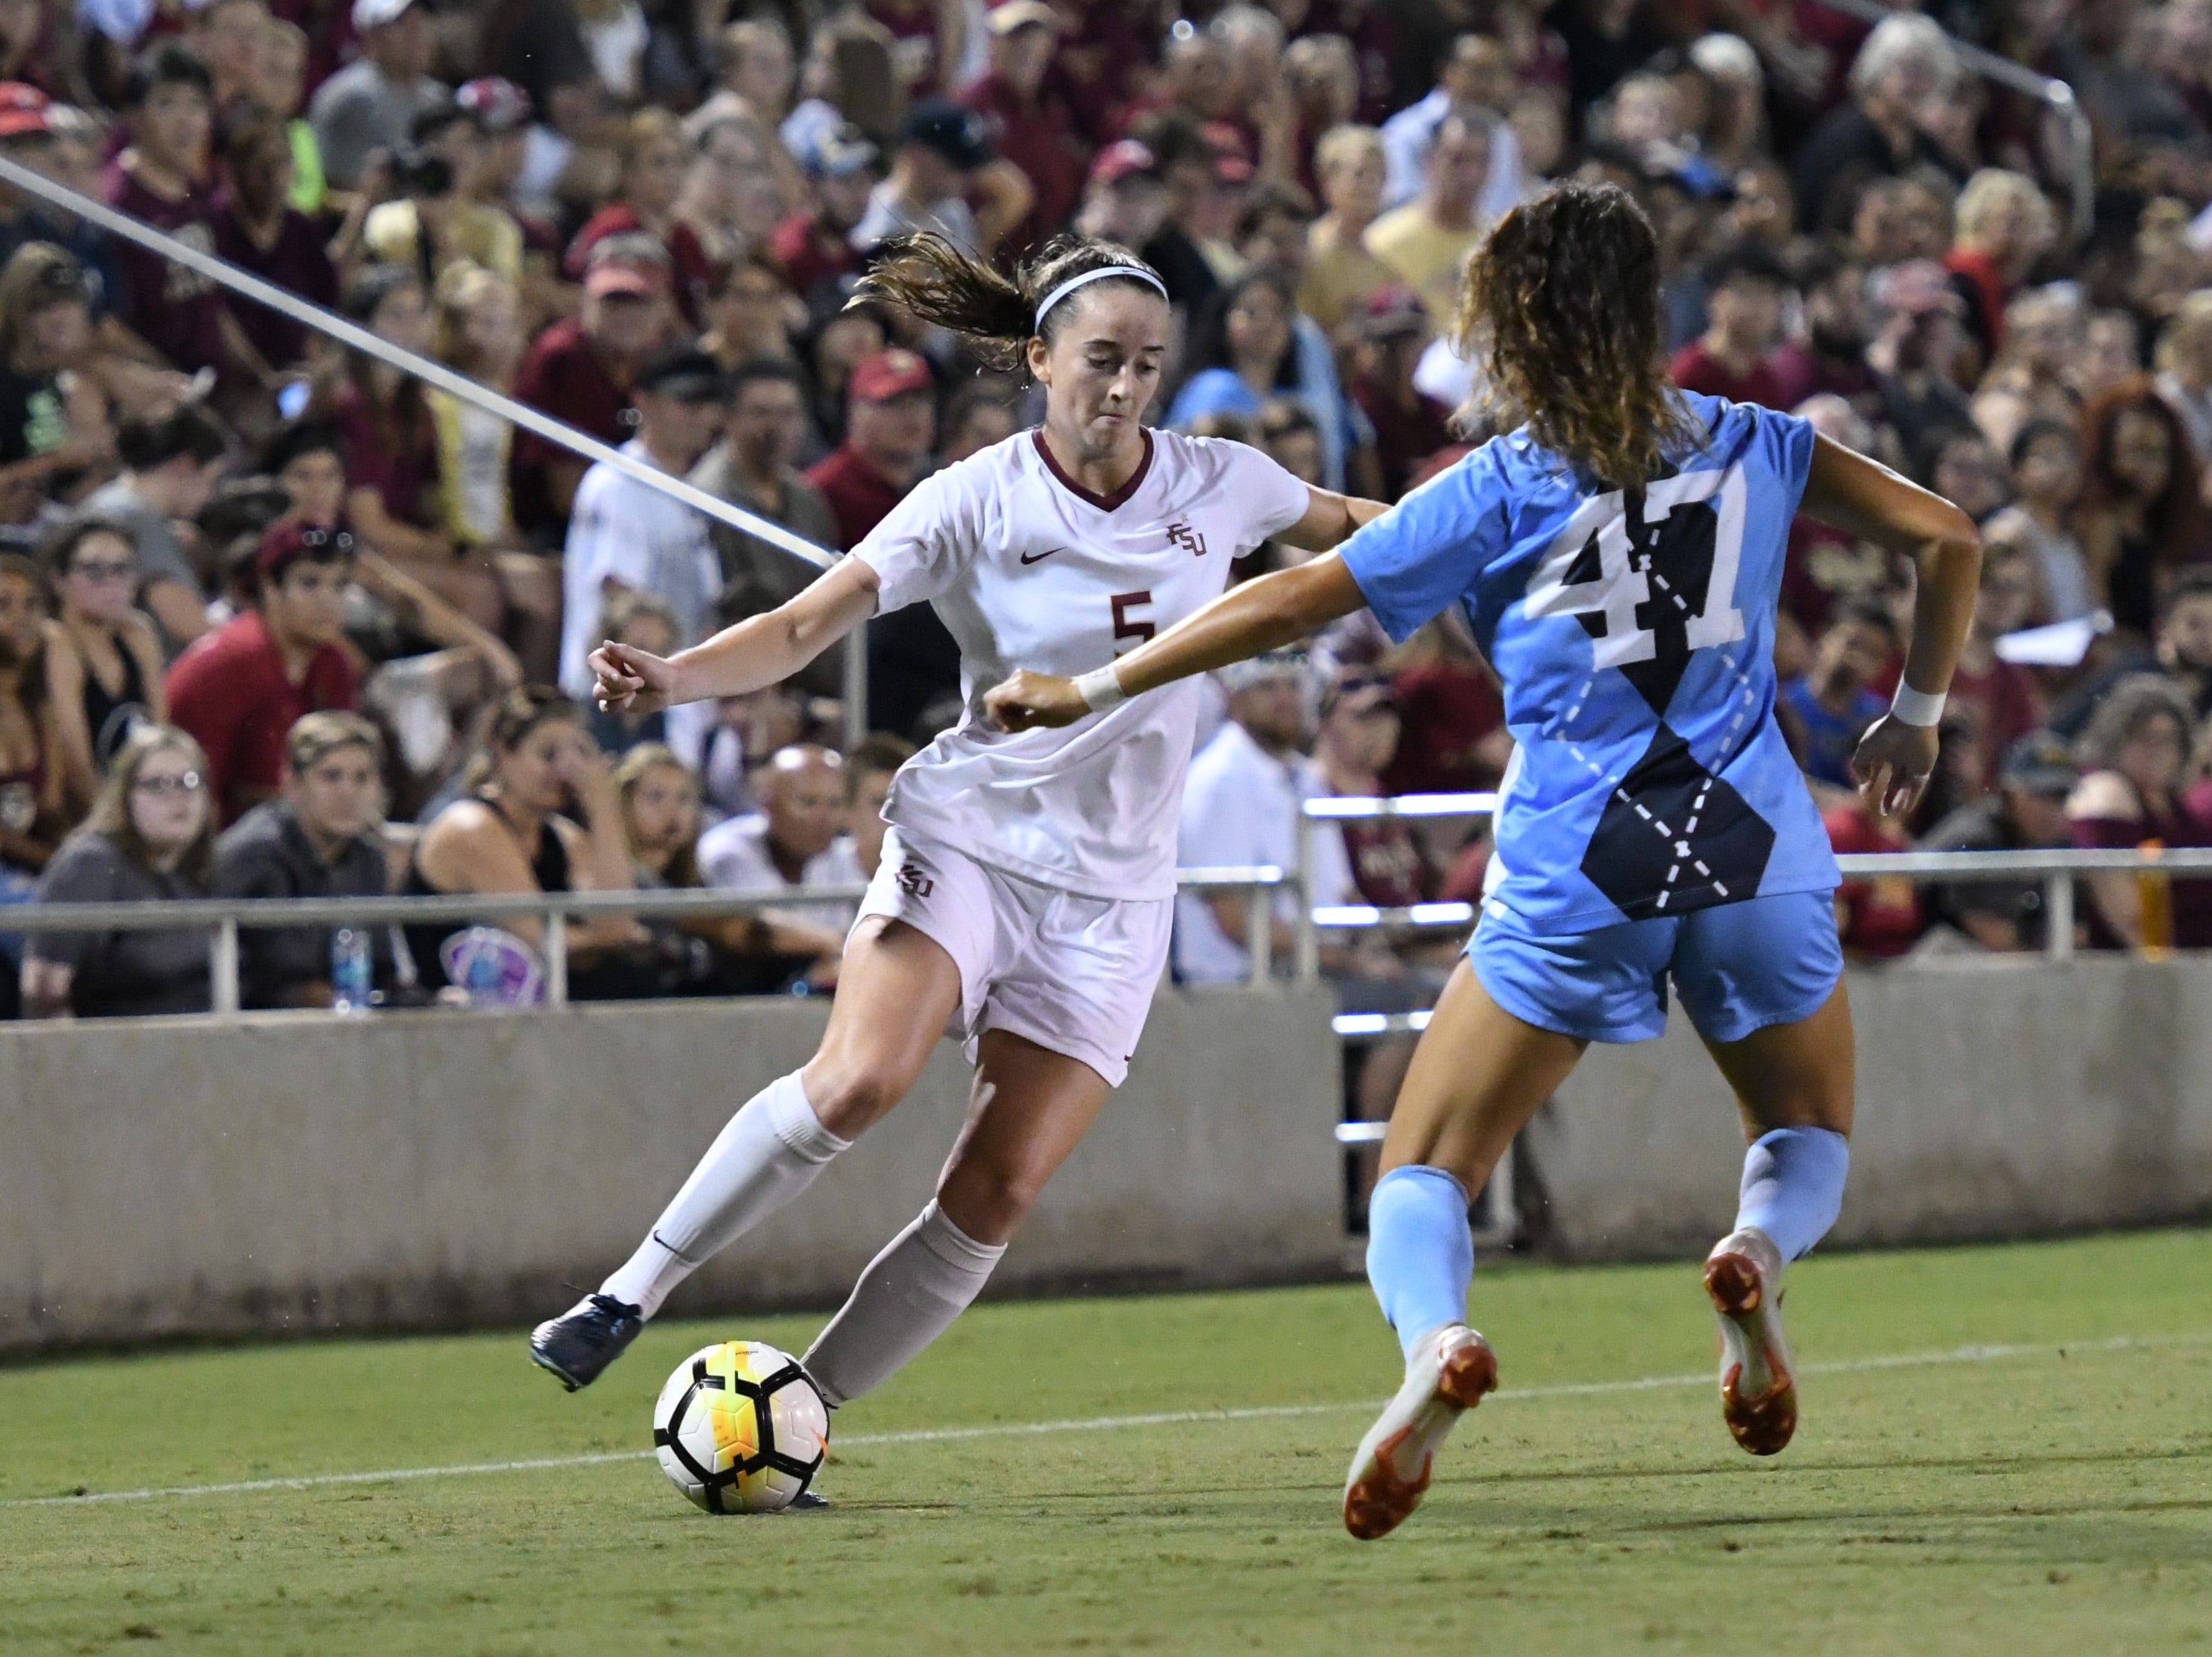 FSU sophomore defender Anna Patten (5) trying to get by a UNC defender during the second half of FSU's game against UNC on September 14th at the Seminole Soccer Complex.